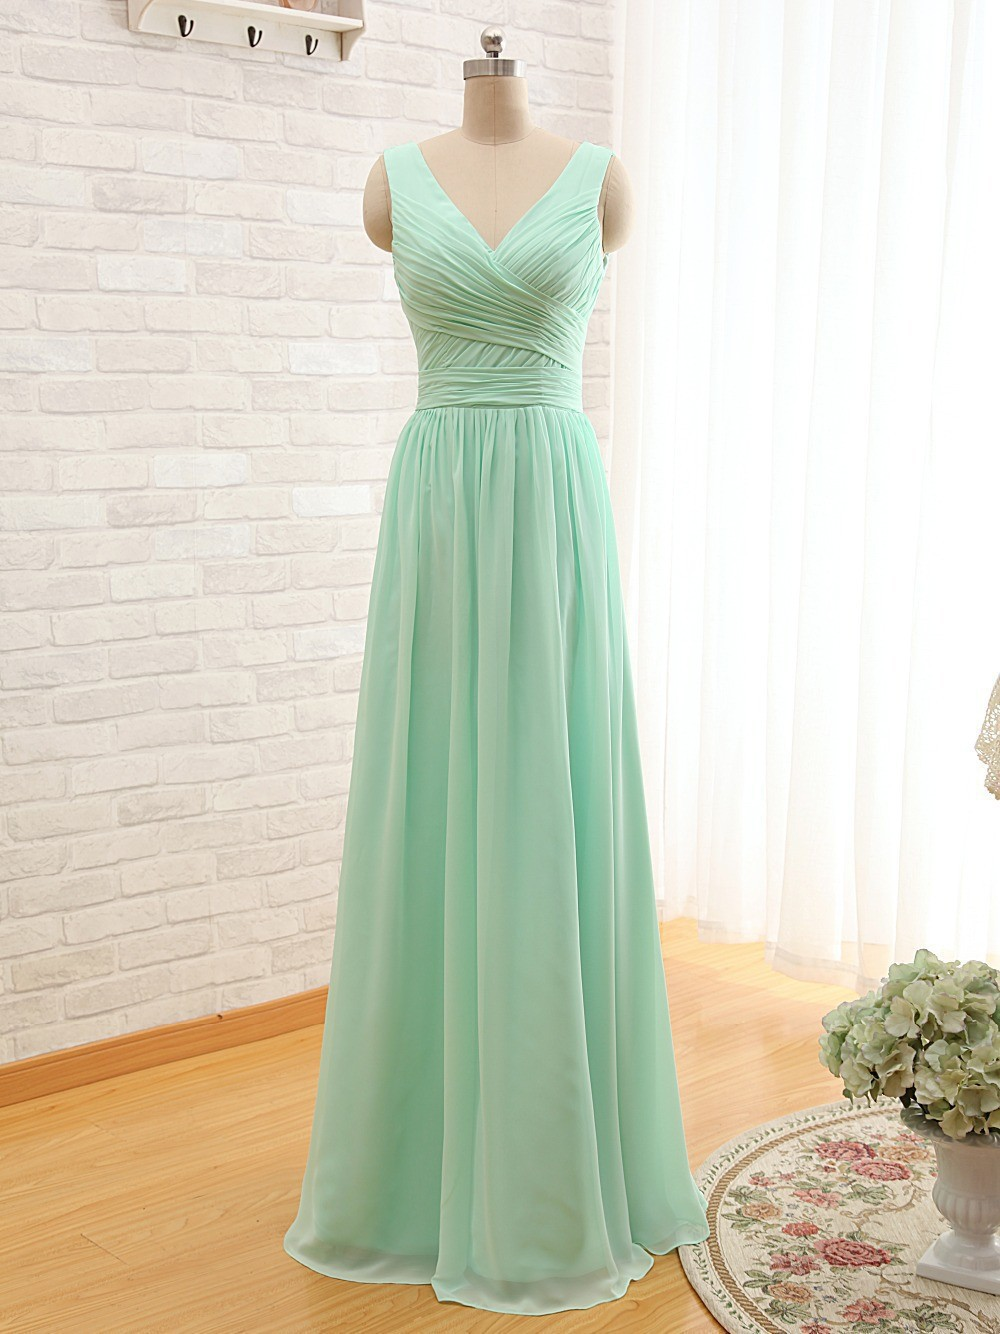 Ever beauty mint green long chiffon a line pleated bridesmaid ever beauty mint green long chiffon a line pleated bridesmaid dress under 50 wedding party dress 2017 robe demoiselle dhonneur in bridesmaid dresses from ombrellifo Choice Image